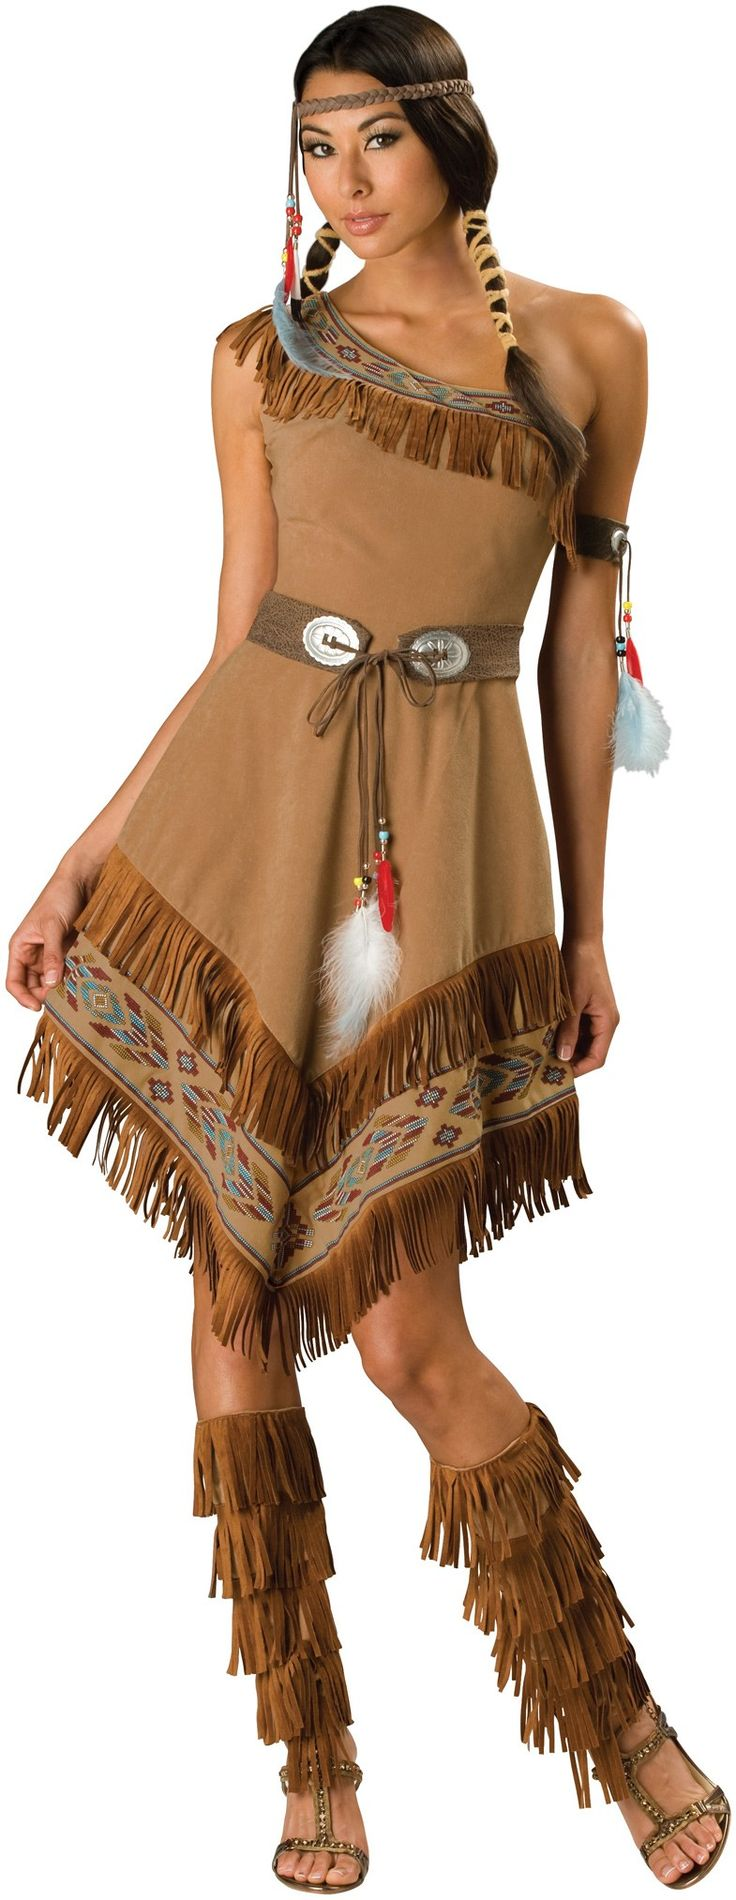 Indian Maiden Adult Costume - Large